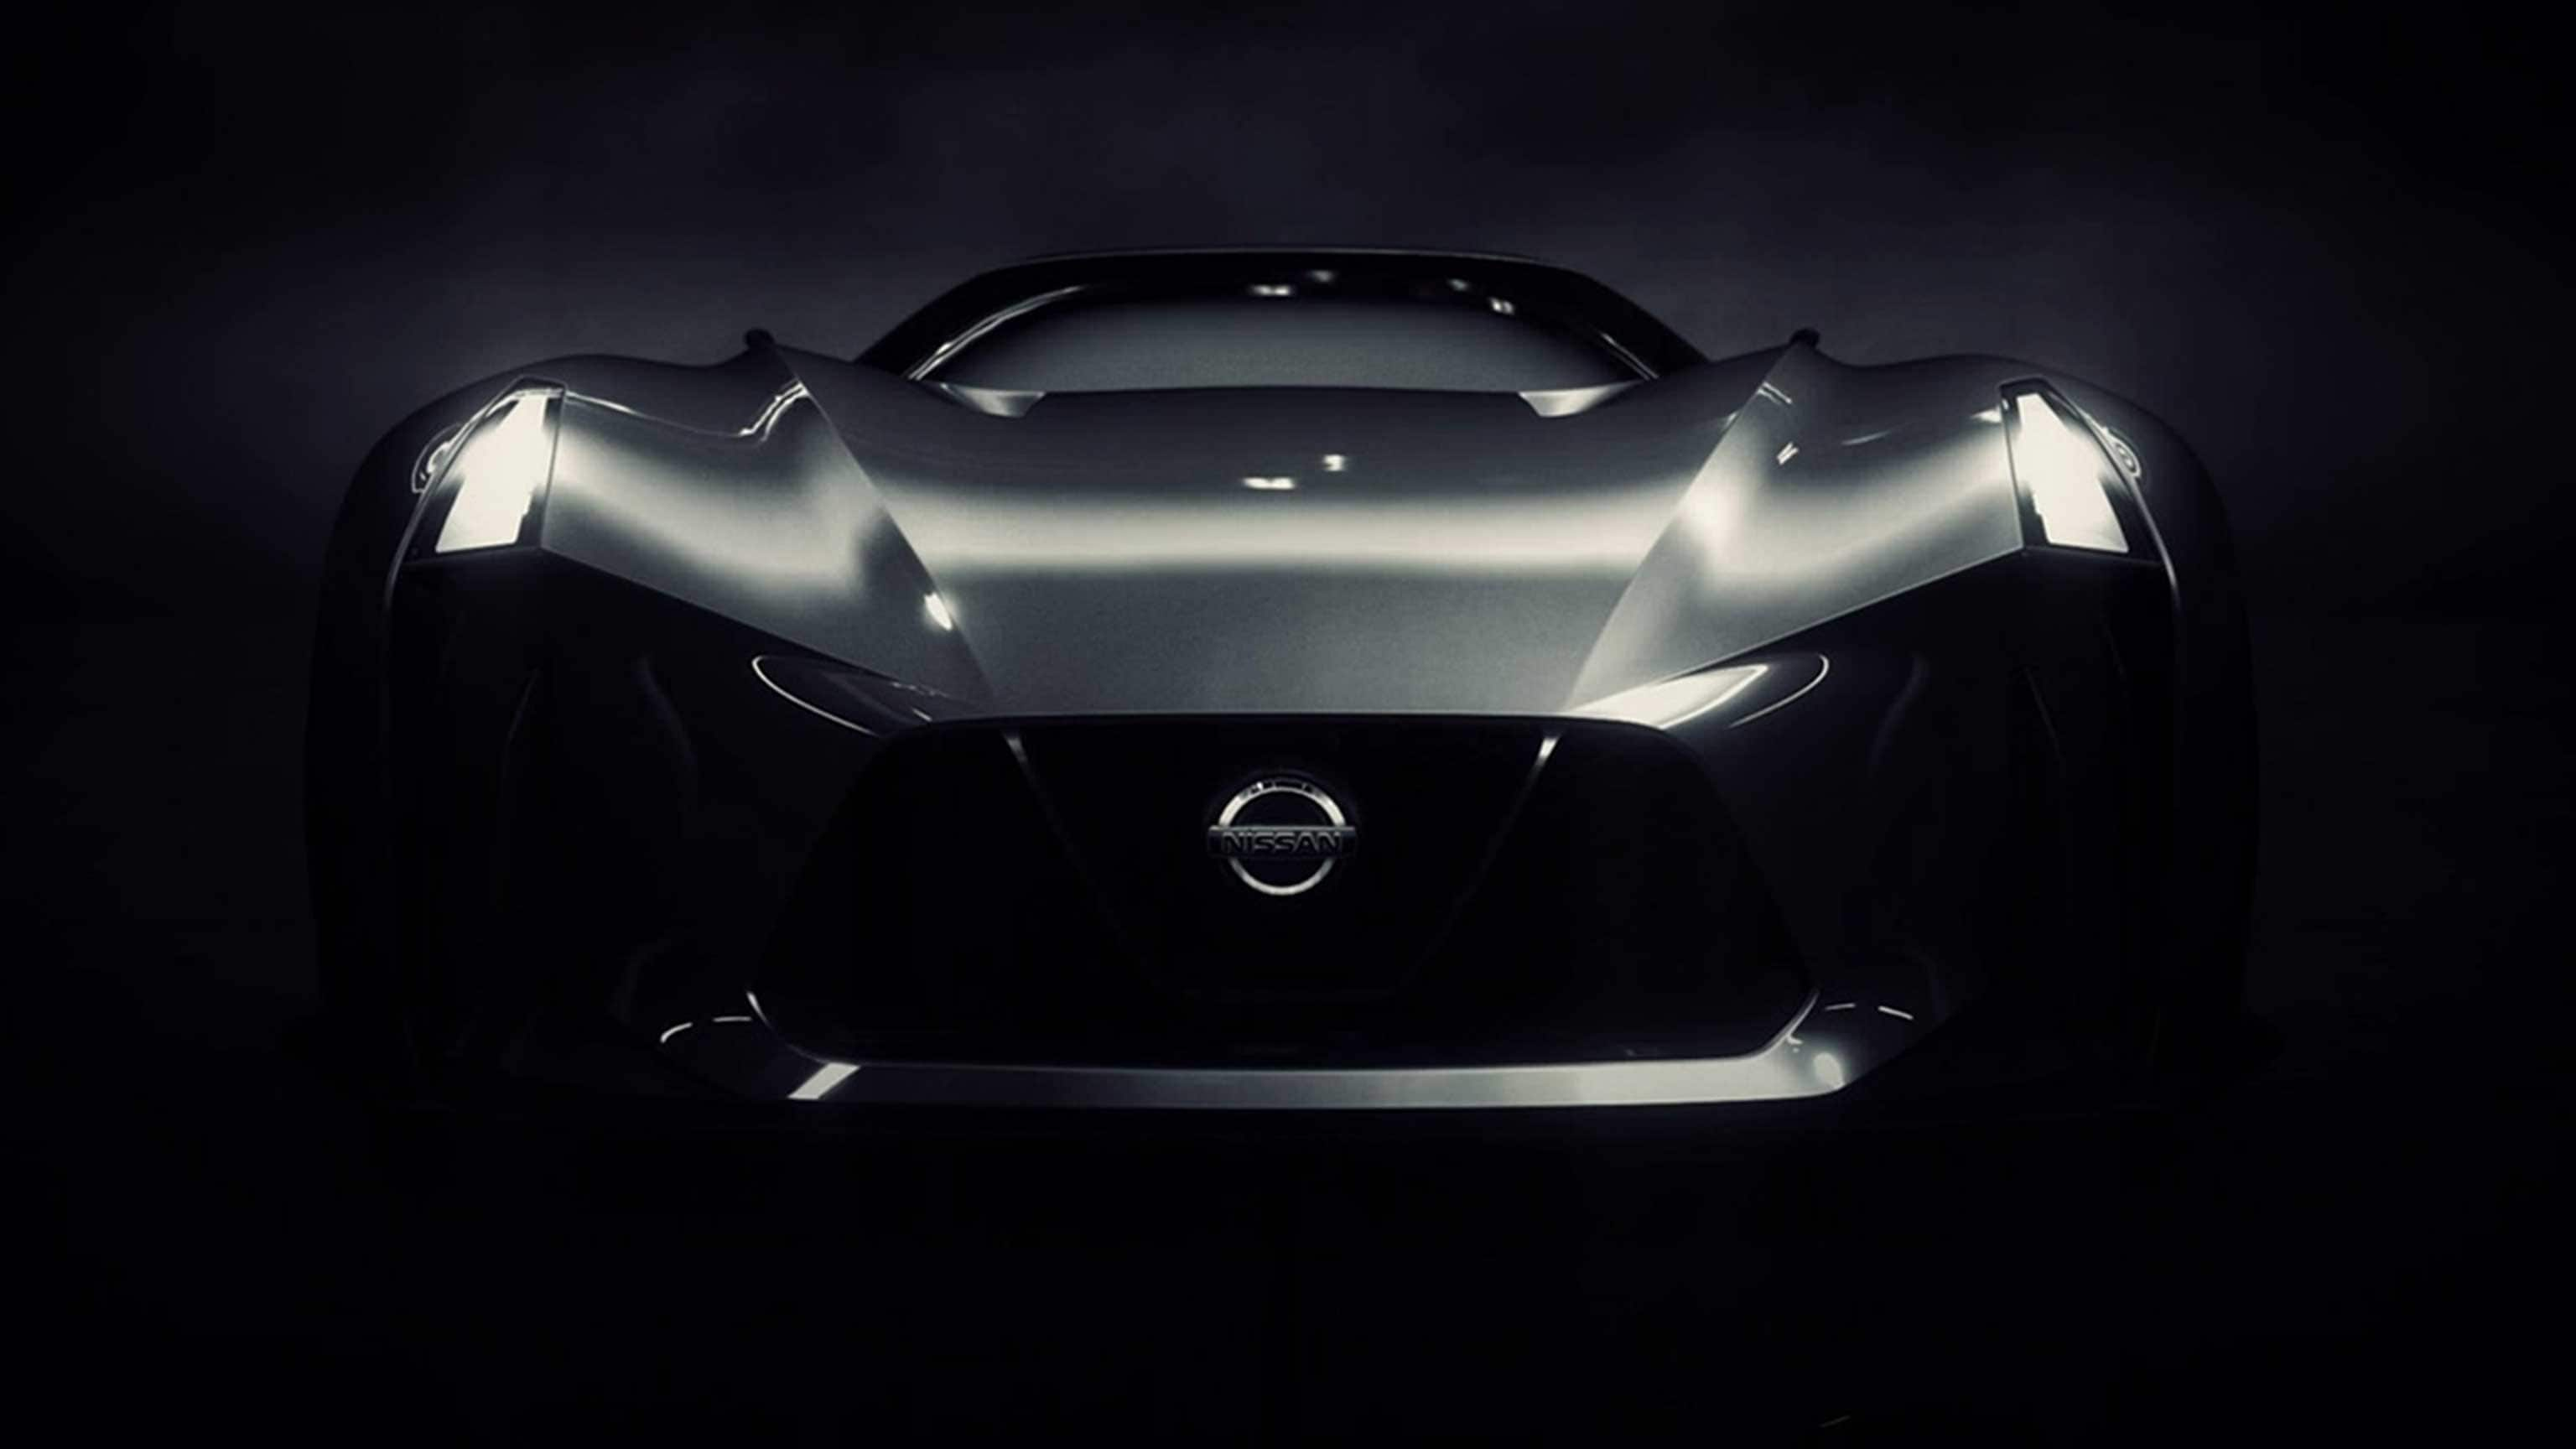 53 All New Nissan 2020 Hp Release Date with Nissan 2020 Hp